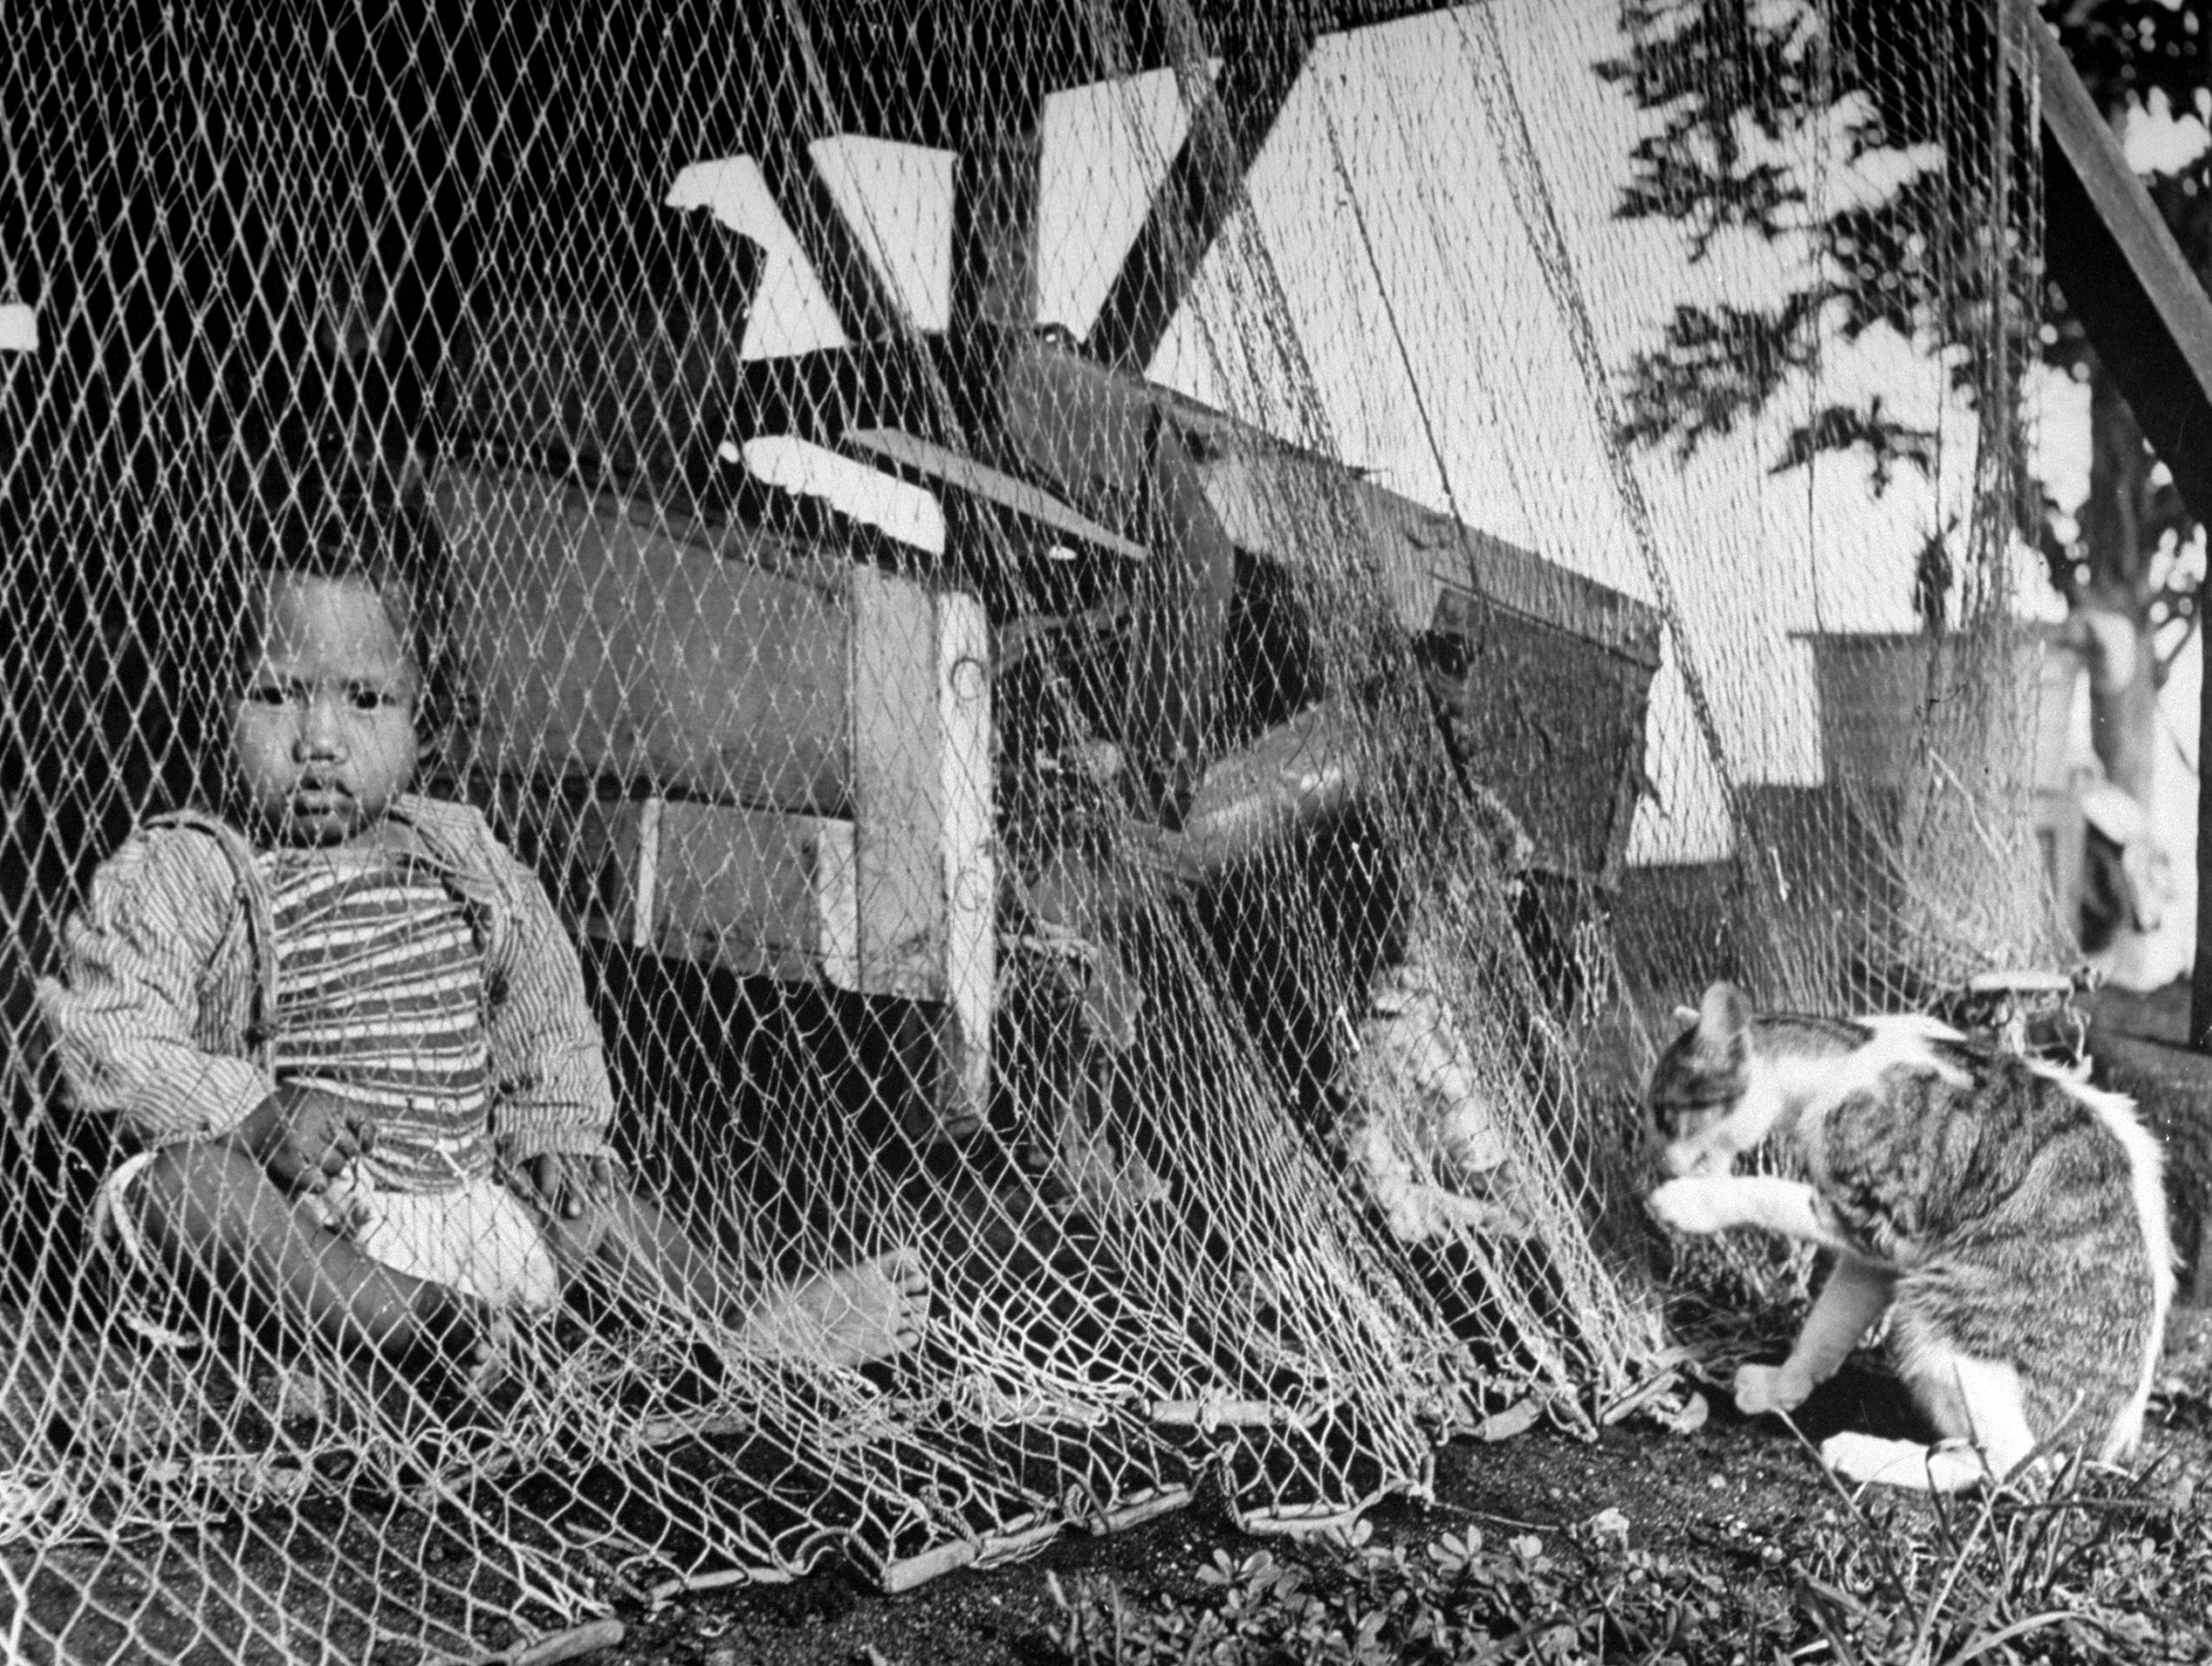 A fishing net hangs out to dry in front of a fisherman's house, while a young child sits underneath.